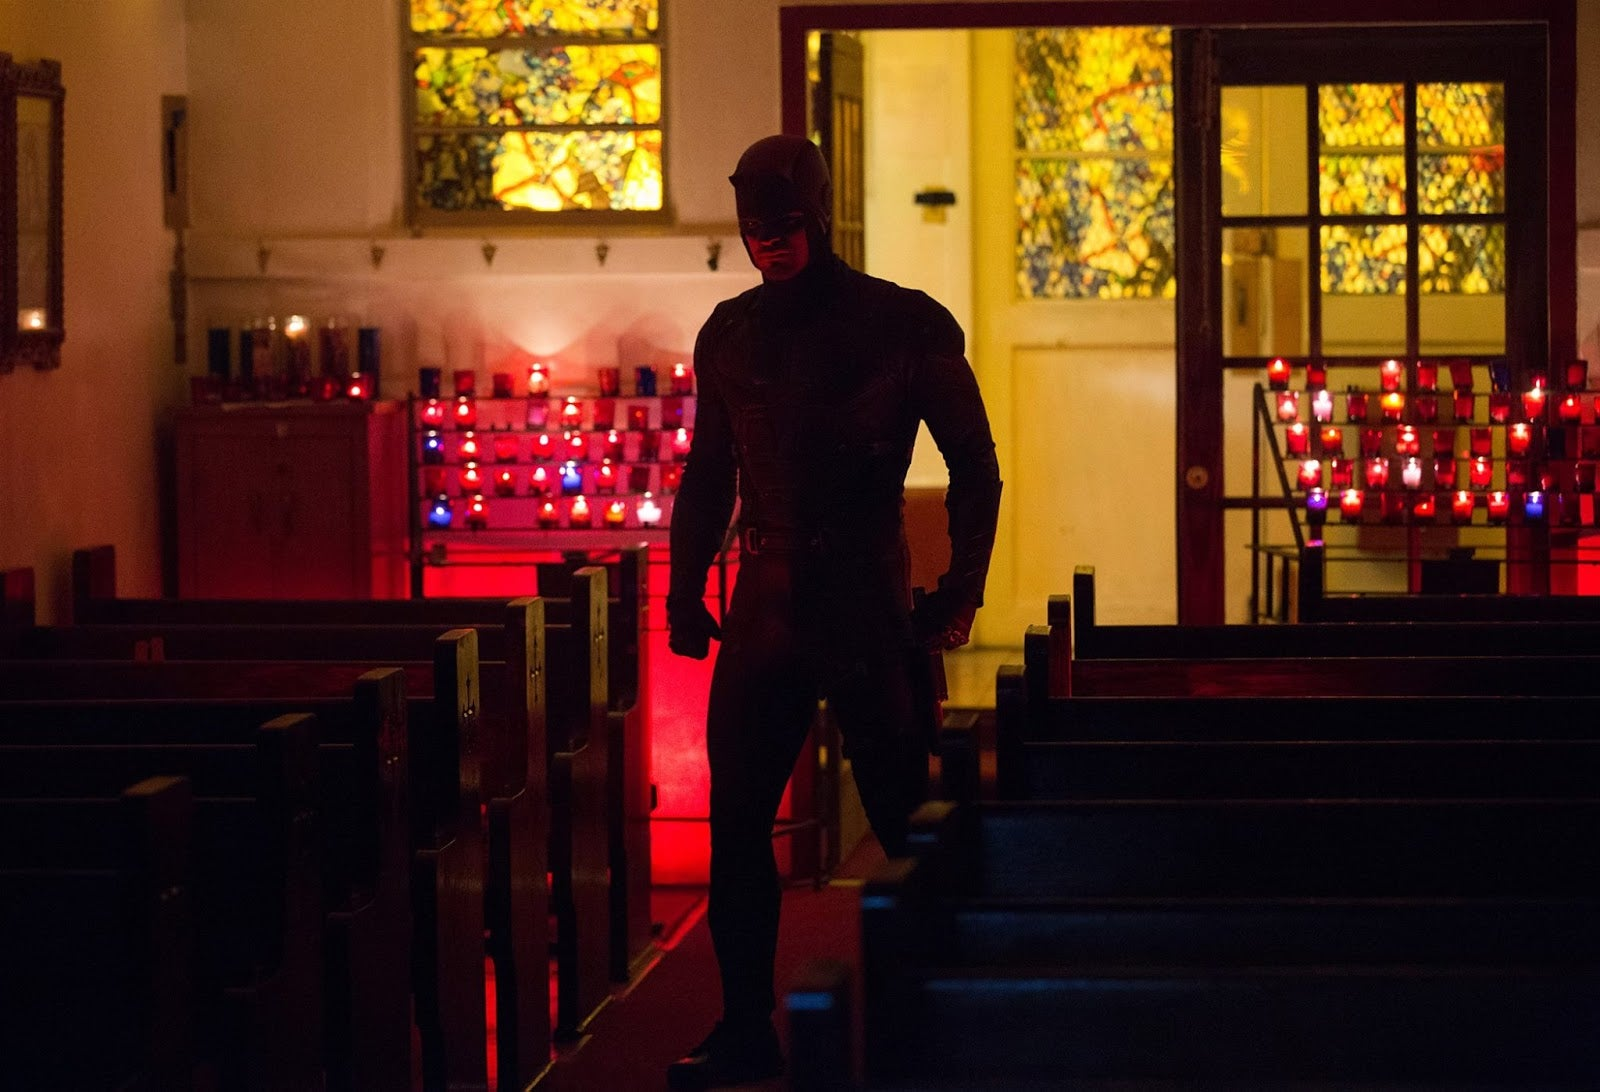 The Punisher Makes the Man Without Fear Bleed in First Full Trailer for Daredevil Season Two